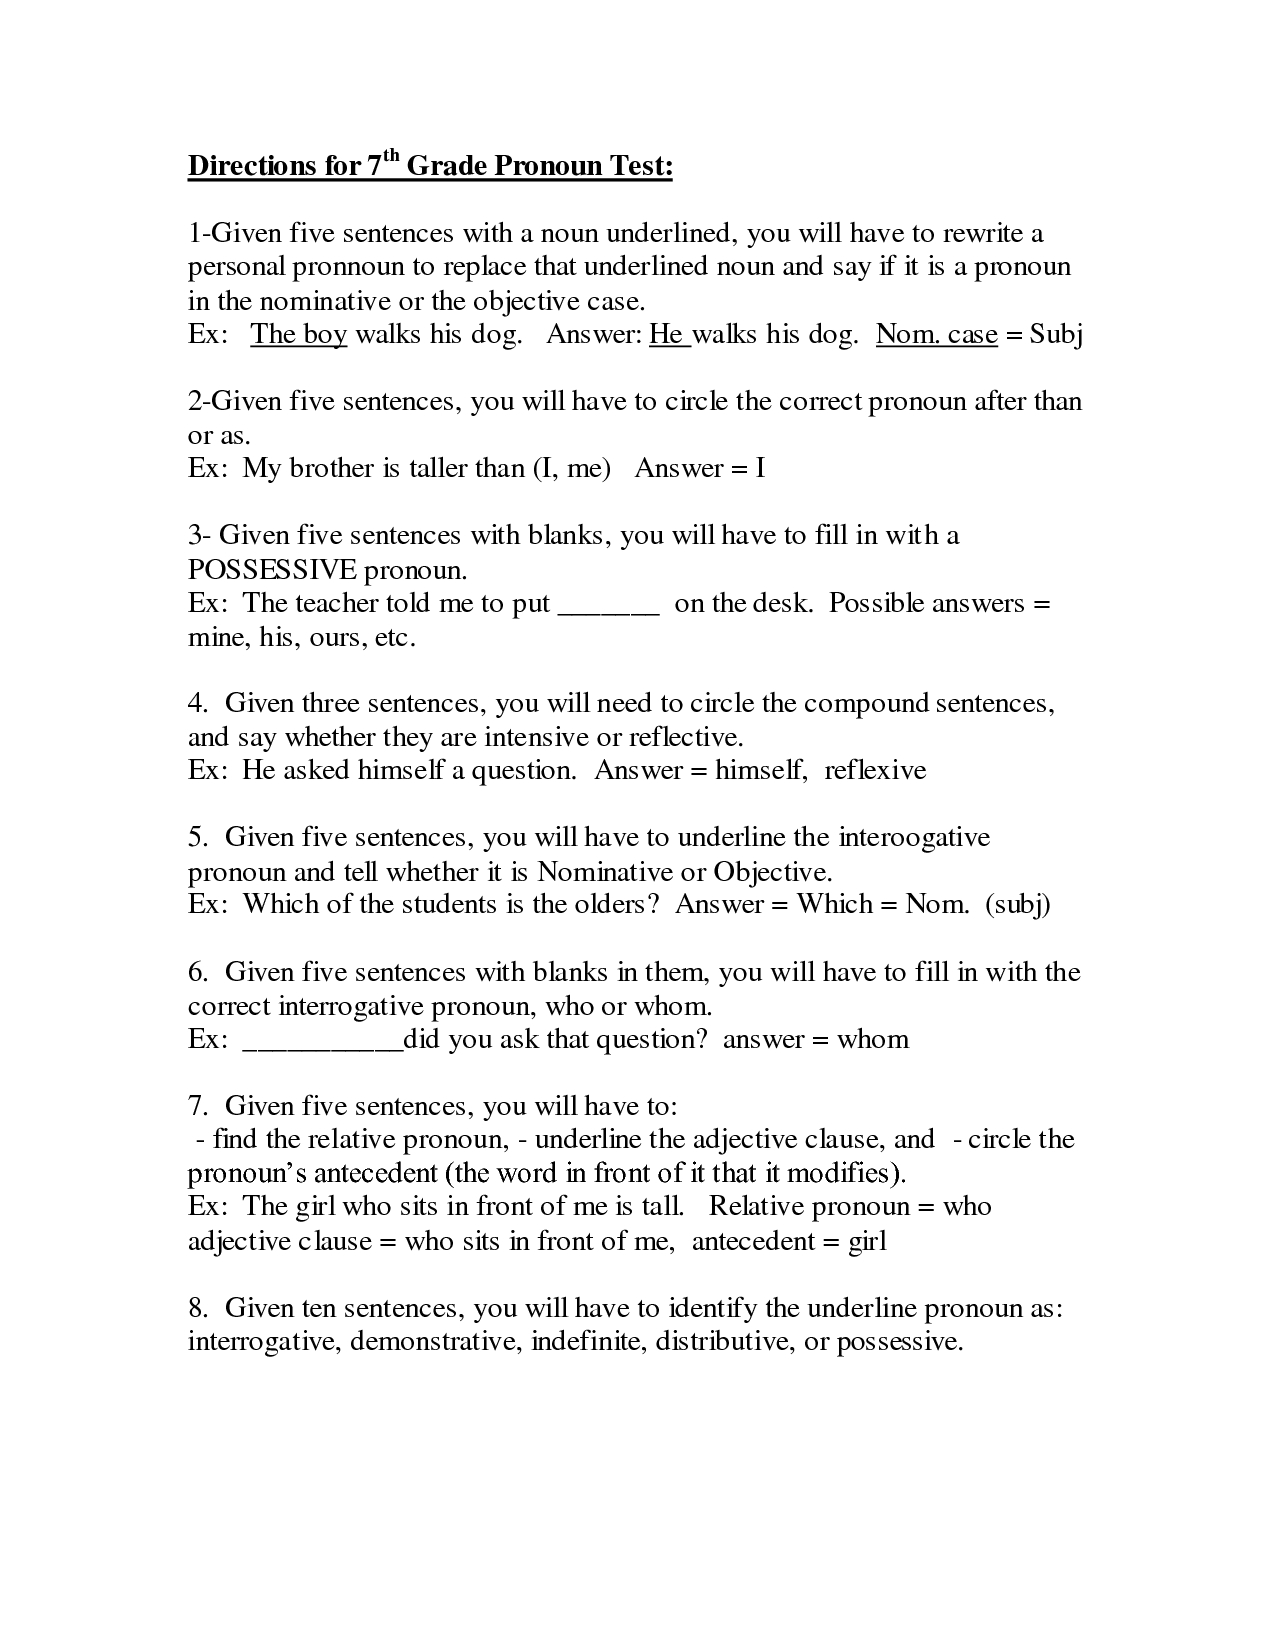 Pronoun Worksheets Middle School - Siteraven | Printable English Worksheets For Middle School